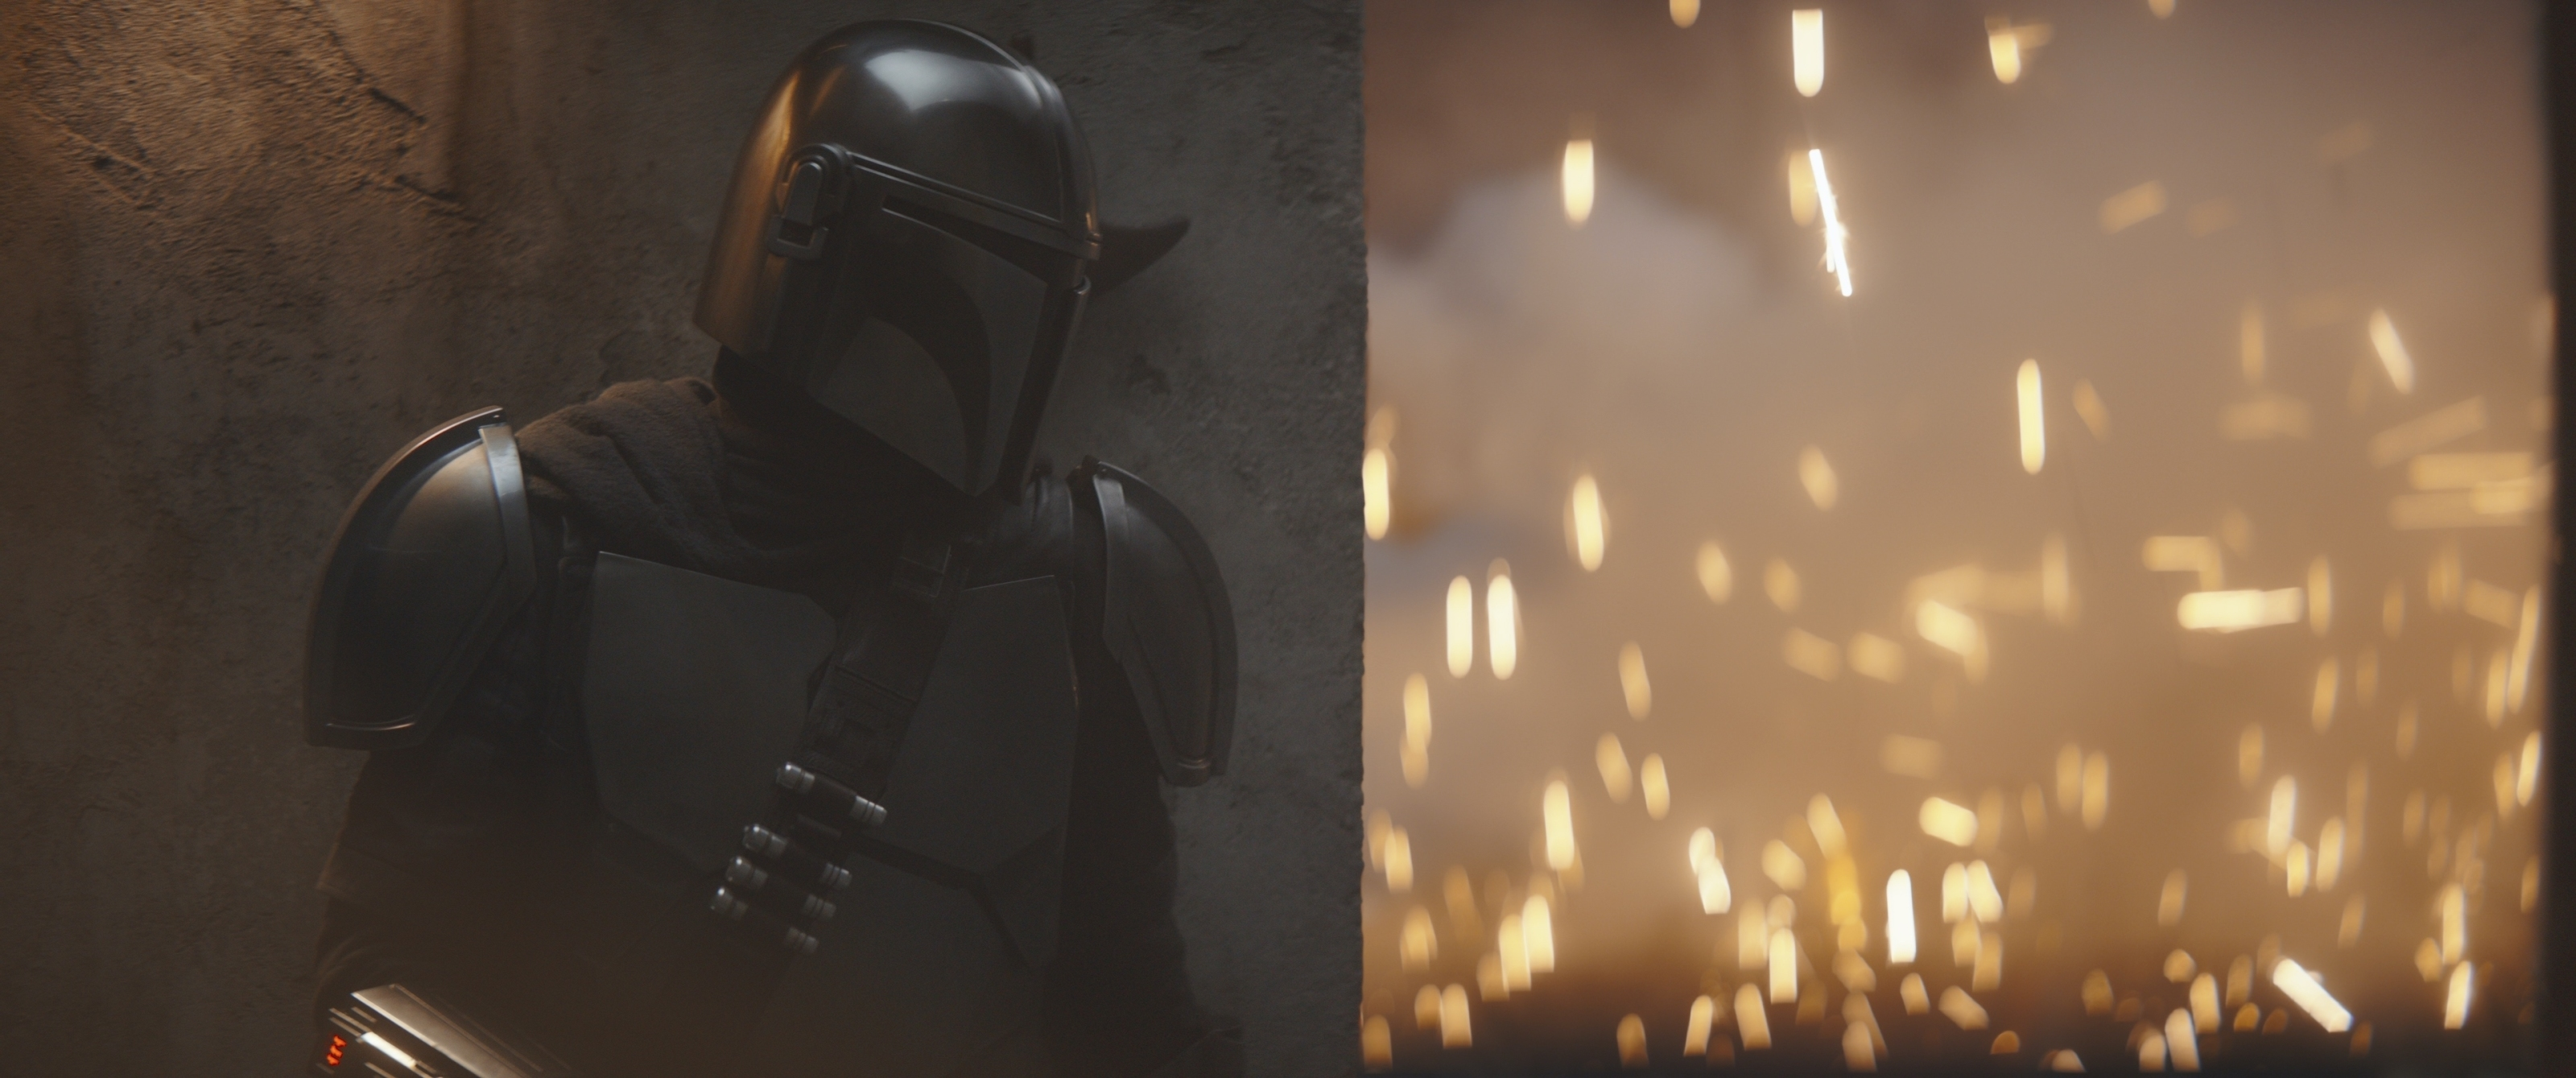 The Mandalorian Season 1 Episode 4 Review Chapter Four Sanctuary The second season of the american television series the mandalorian stars pedro pascal as the title character, a bounty hunter trying to return the child to his people, the jedi. the mandalorian season 1 episode 4